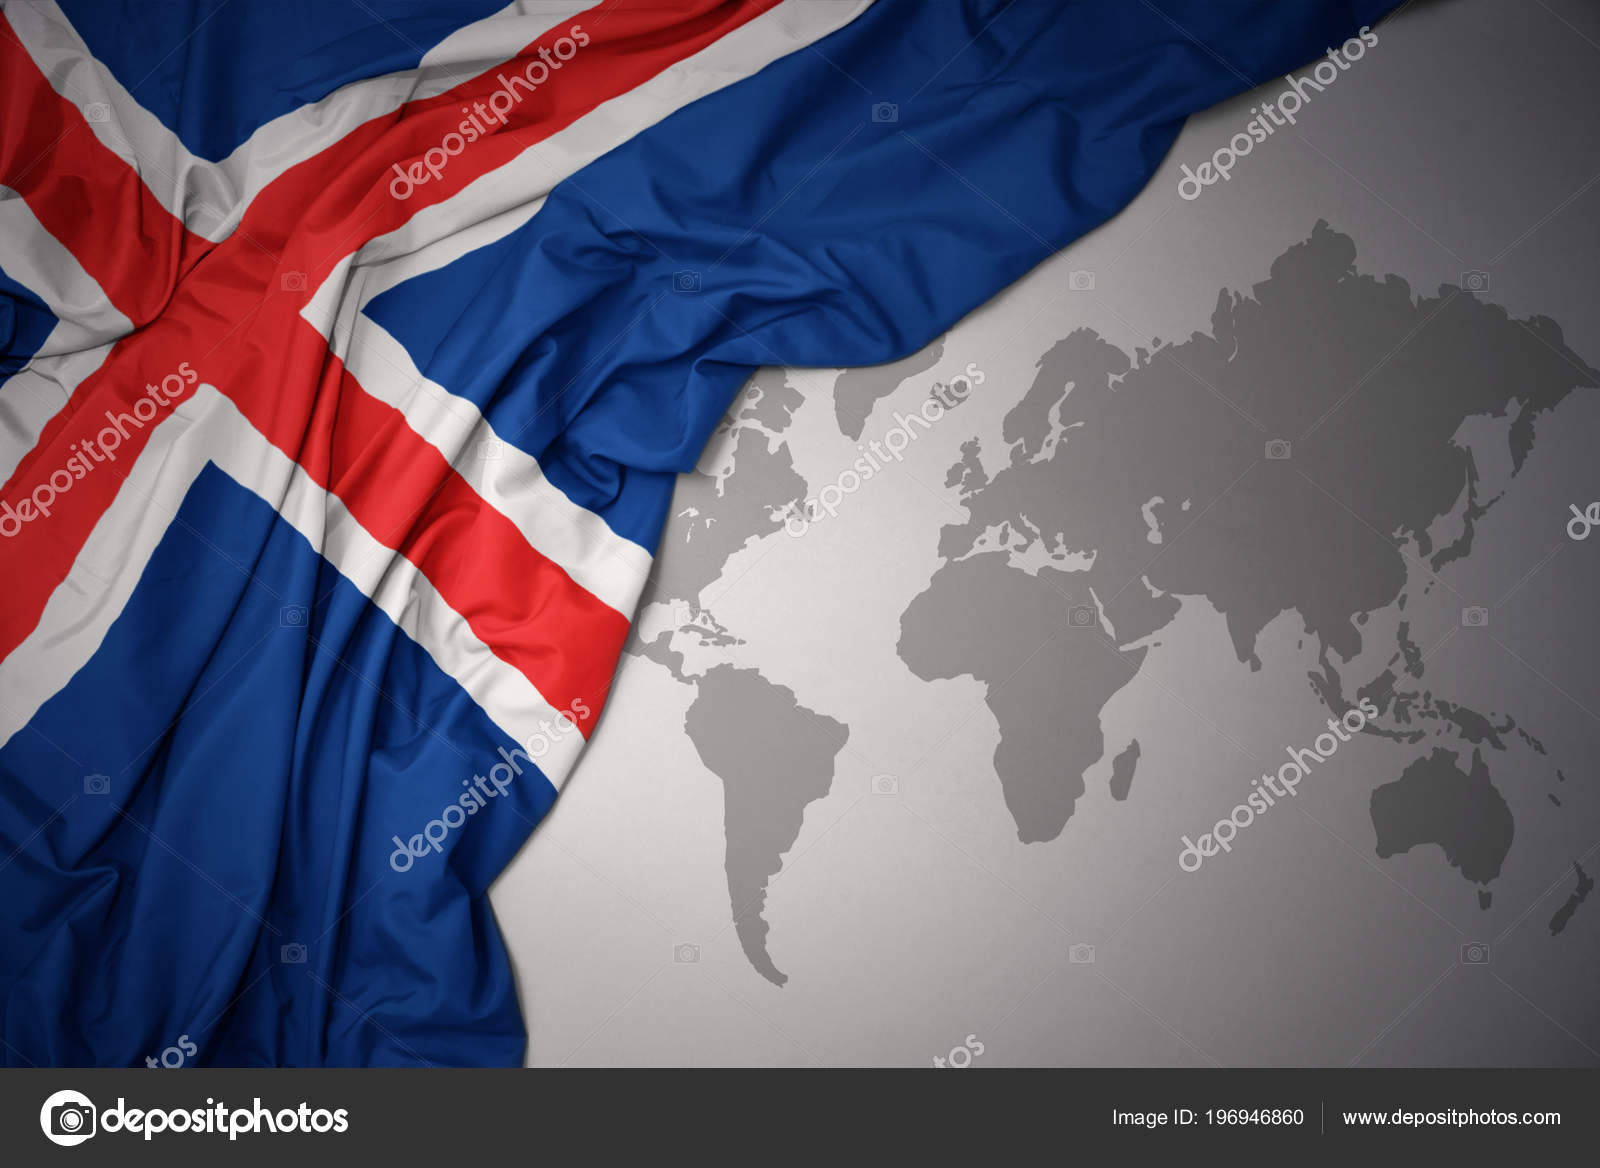 Waving Colorful National Flag Iceland Gray World Map ... on iceland road map, iceland in the world map, iceland map with main rivers names, 3d iceland map, scandinavia denmark sweden norway map, iceland light show in january, iceland on a map, iceland reykjavik city center, north sea map, iceland on europe, iceland points of interest maps, iceland location in the world, iceland on the globe, iceland on us map, europe and siberia map, new zealand world map, iceland map europe, reykjavik iceland on map, iceland political map, mediterranean sea map,